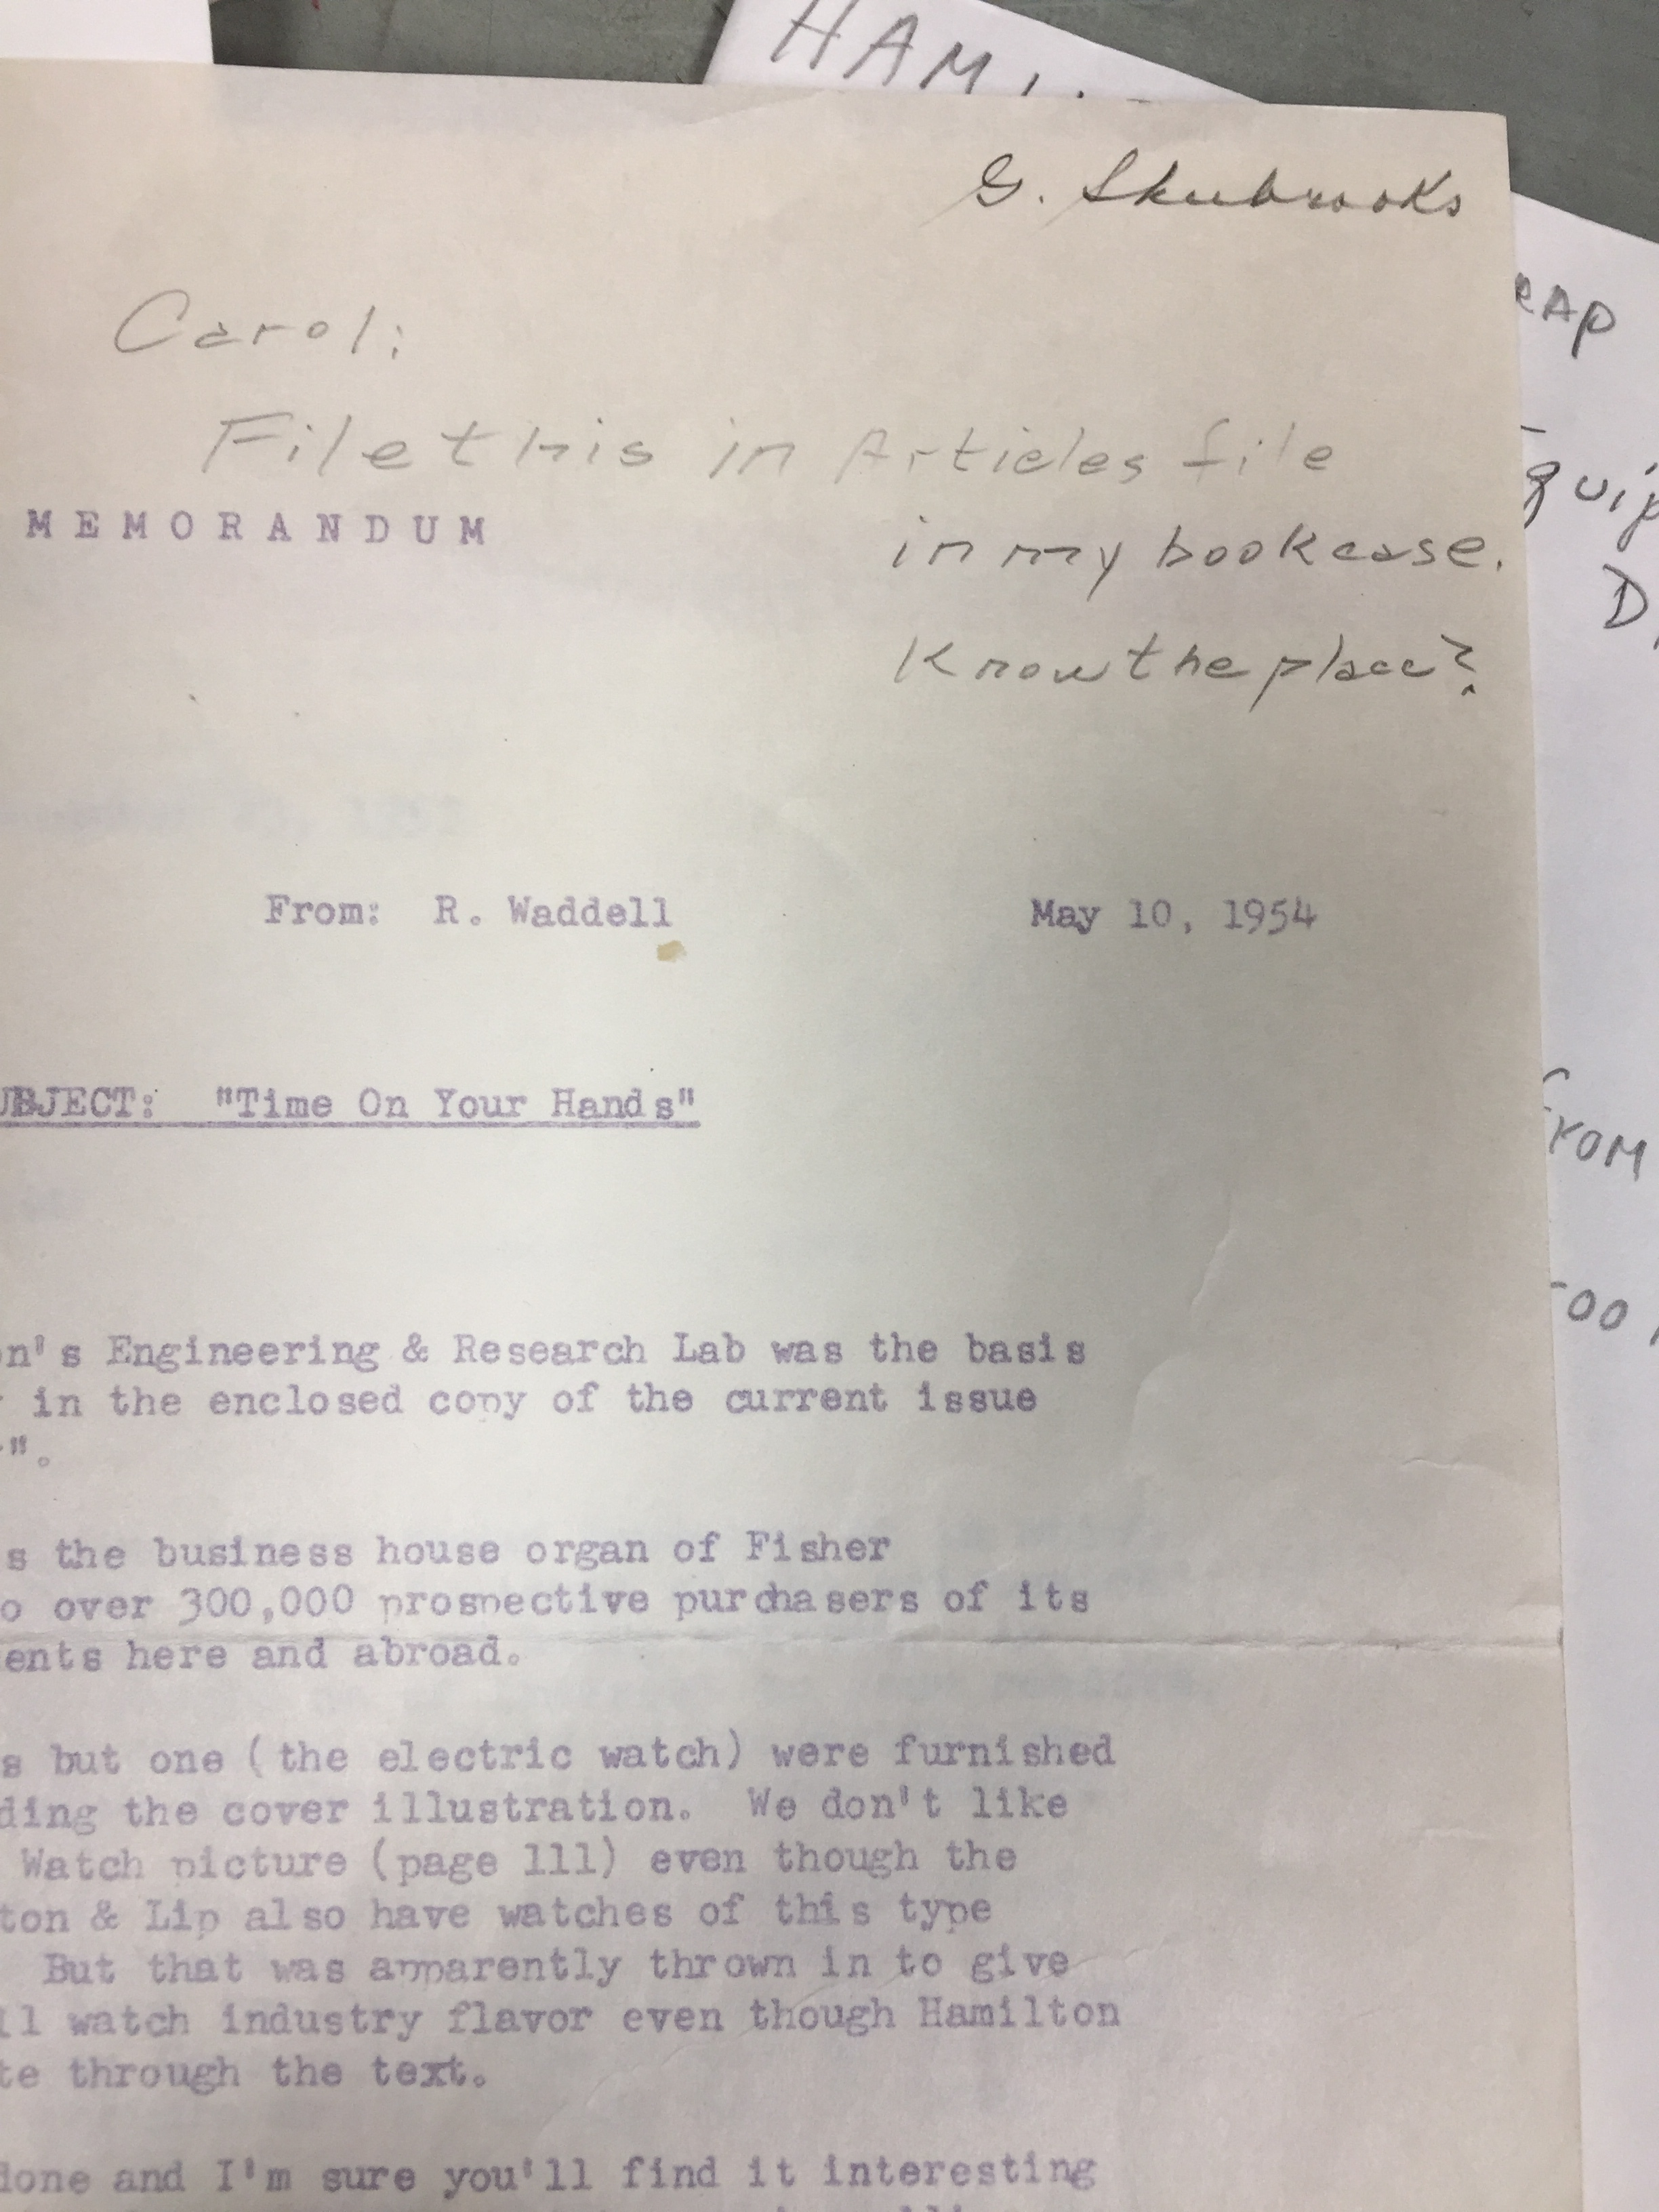 A memo with one of the many filing notes Shubrooks wrote to his secretary. May 10, 1954.